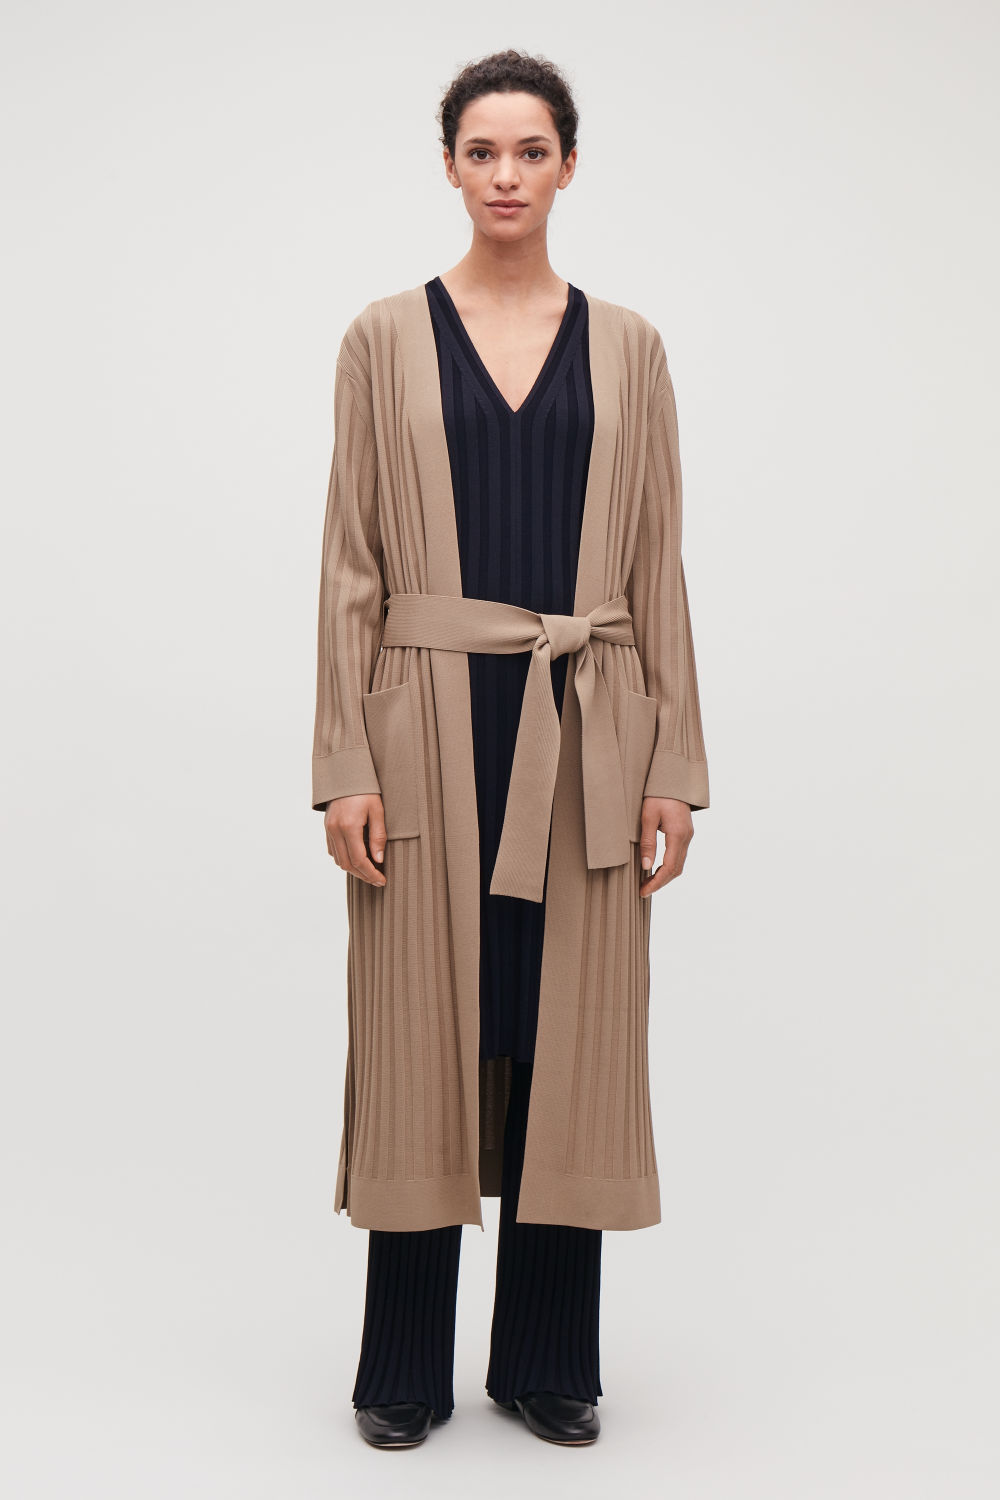 COS LONG RIBBED KNITTED JACKET,Dark beige